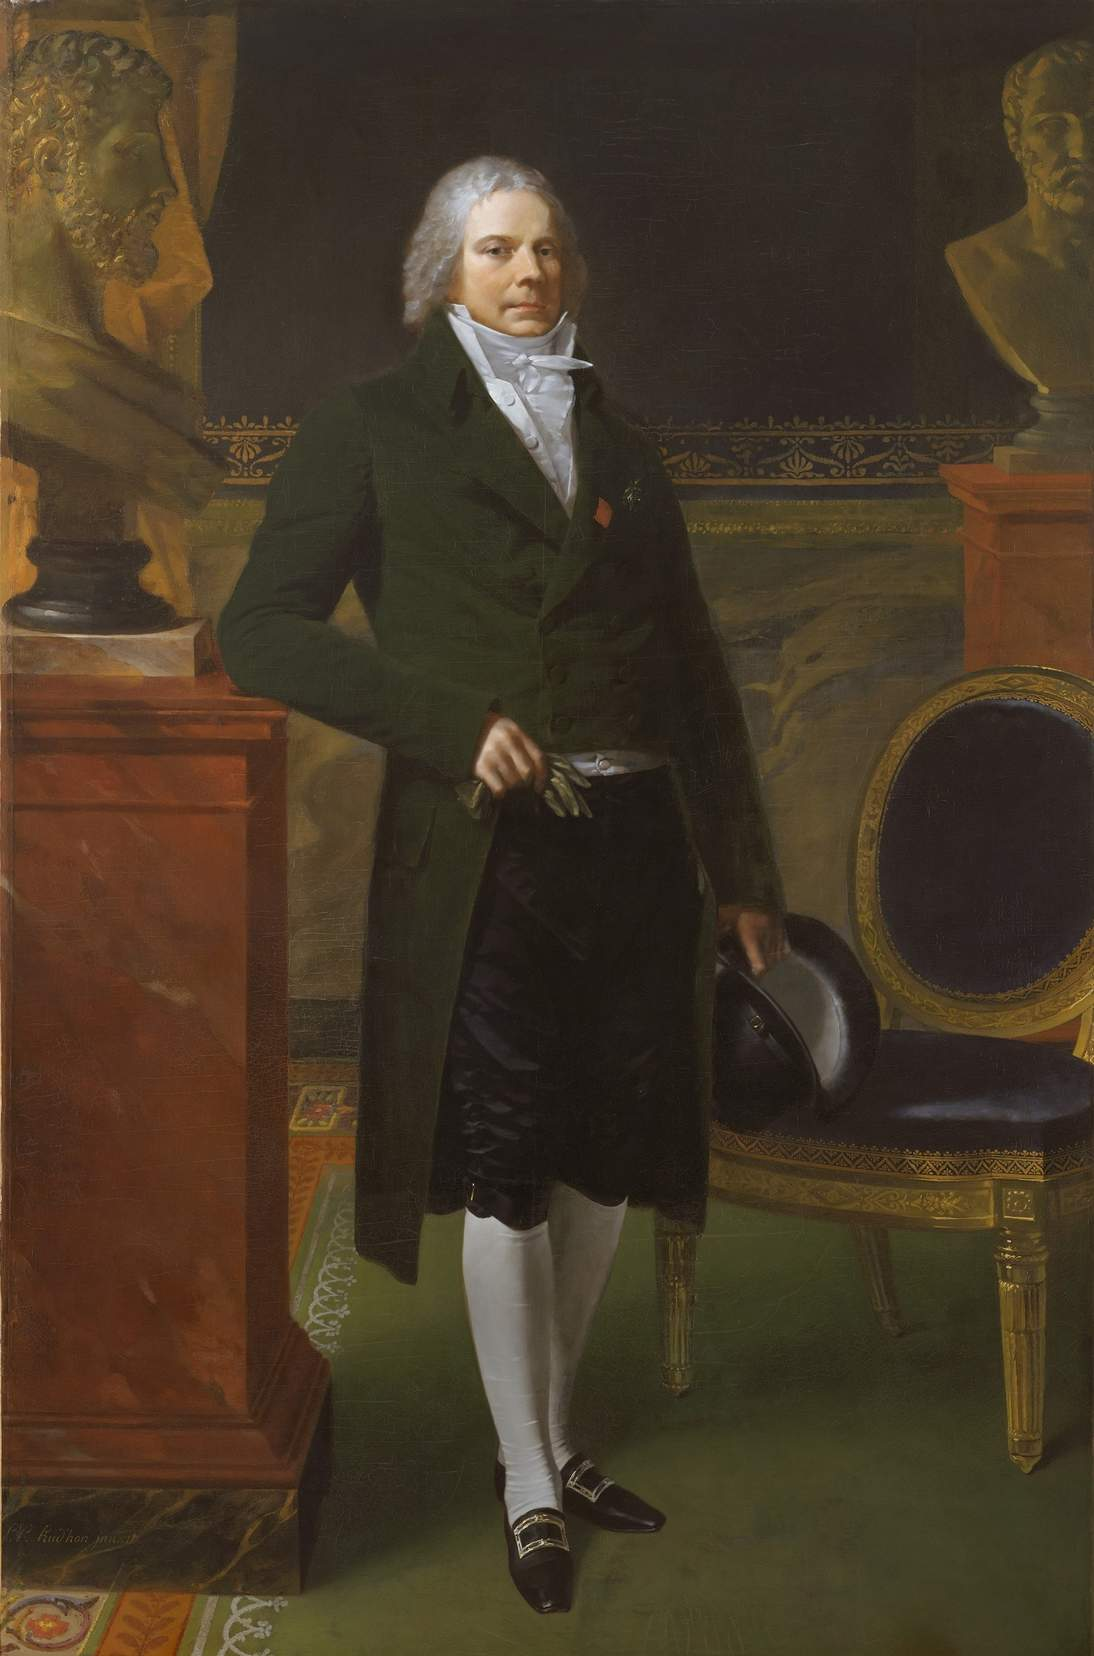 Charles Maurice de Talleyrand-Périgord by Pierre Paul Prud'hon